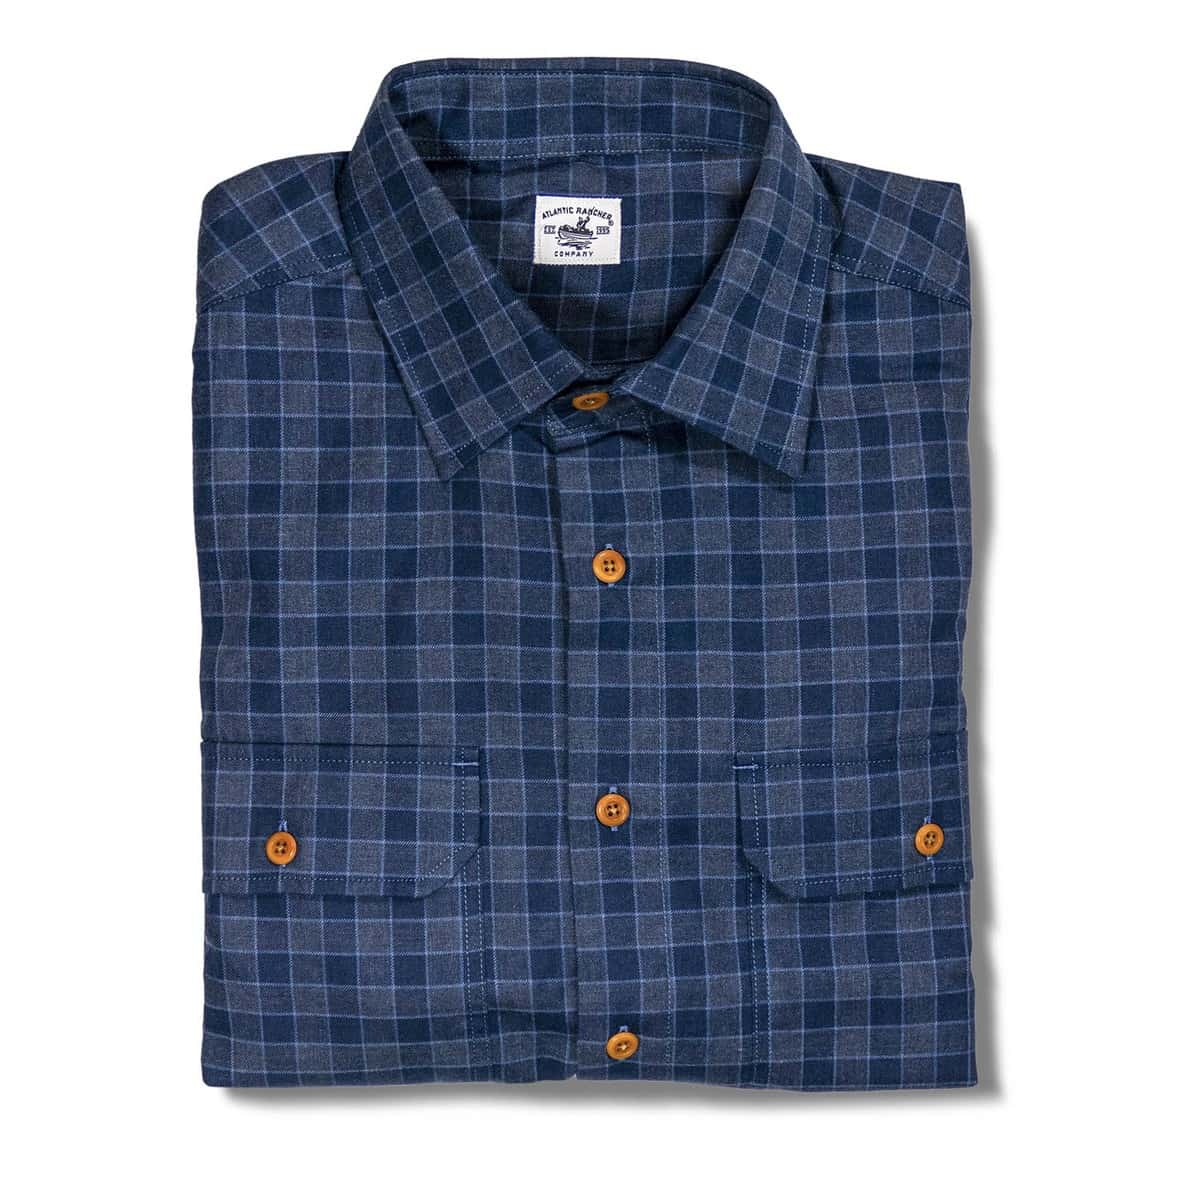 Buy The Bayman's Flannel Shirt - Navy / Charcoal